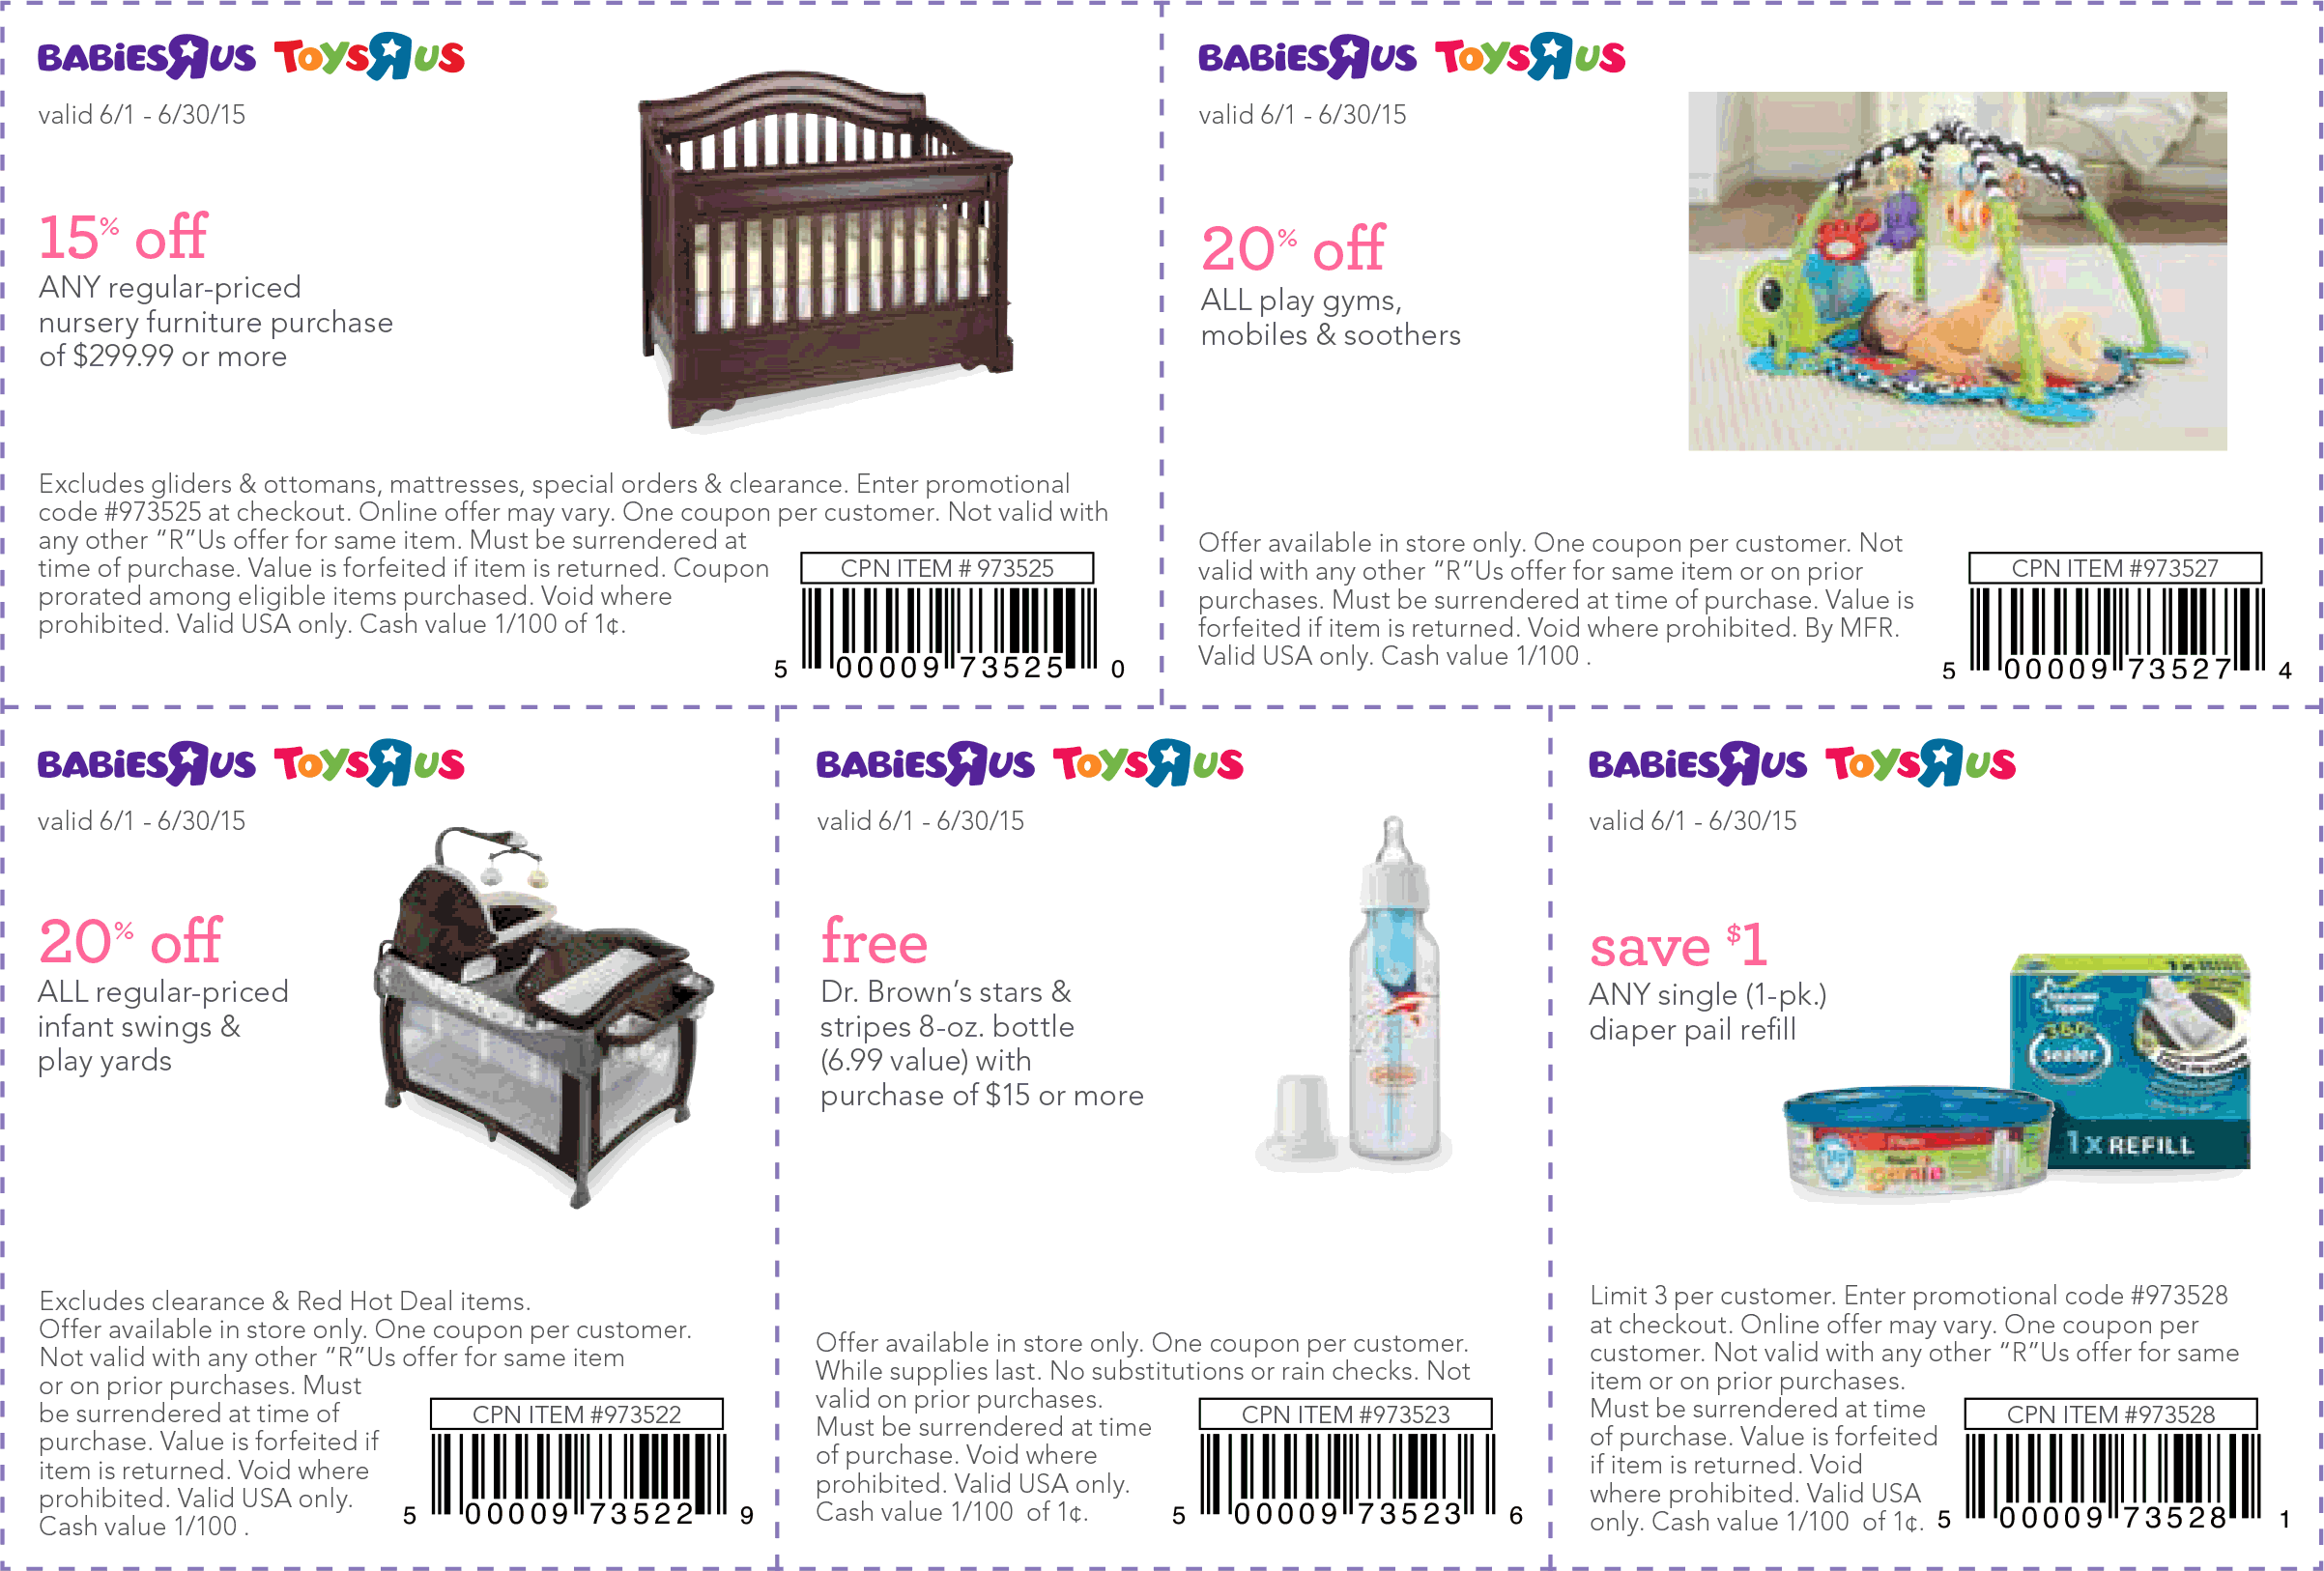 Babies R Us Coupon June 2017 15% off various baby items & furniture at Babies R Us & Toys R Us, or online via promo code 973525